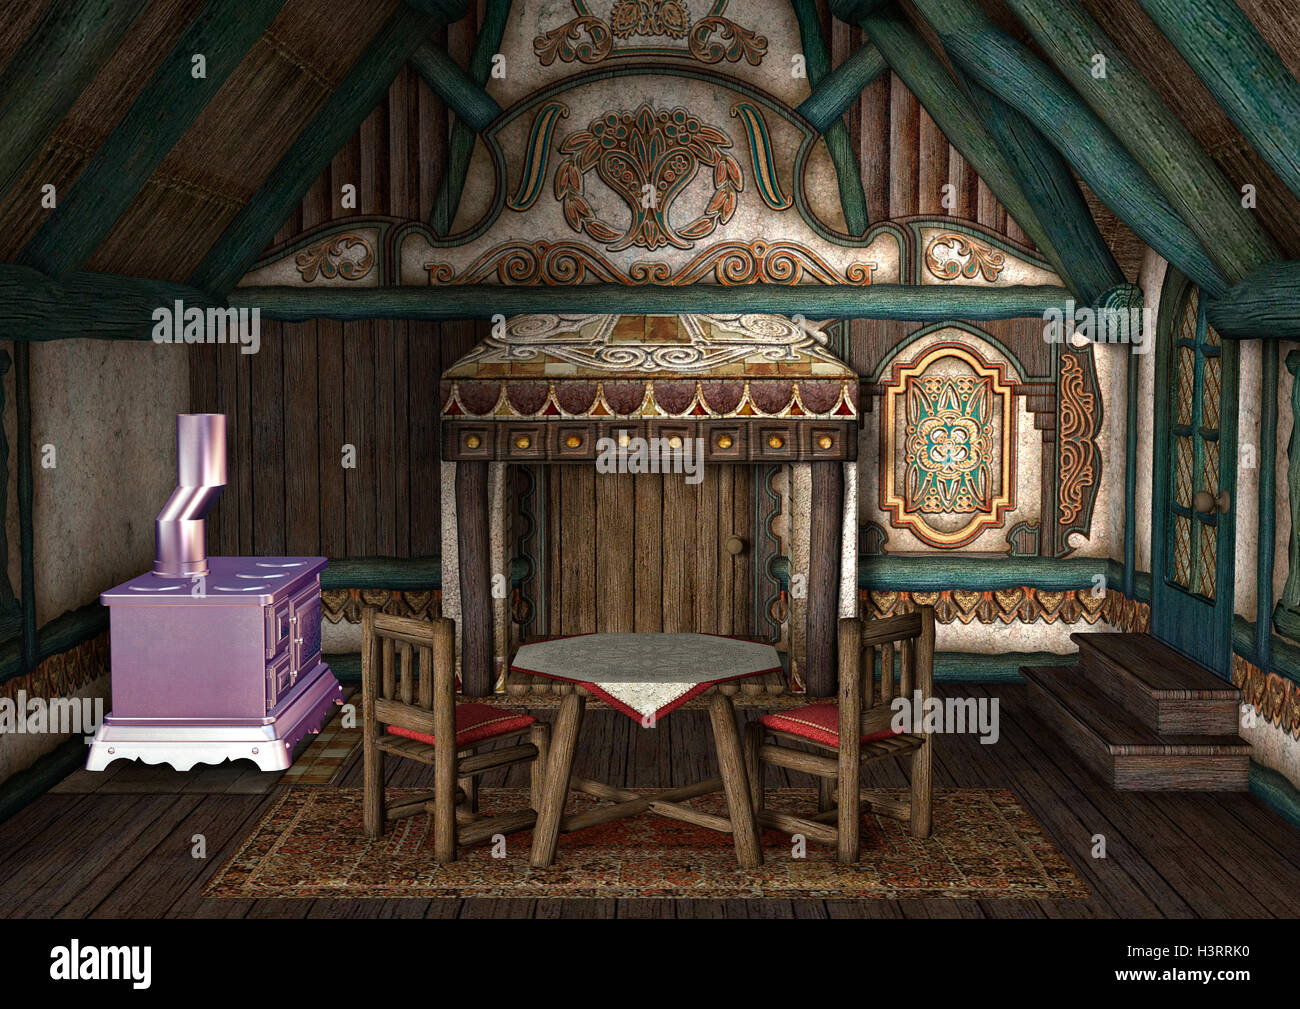 3D Rendering Of A Fairytale Cottage Interior